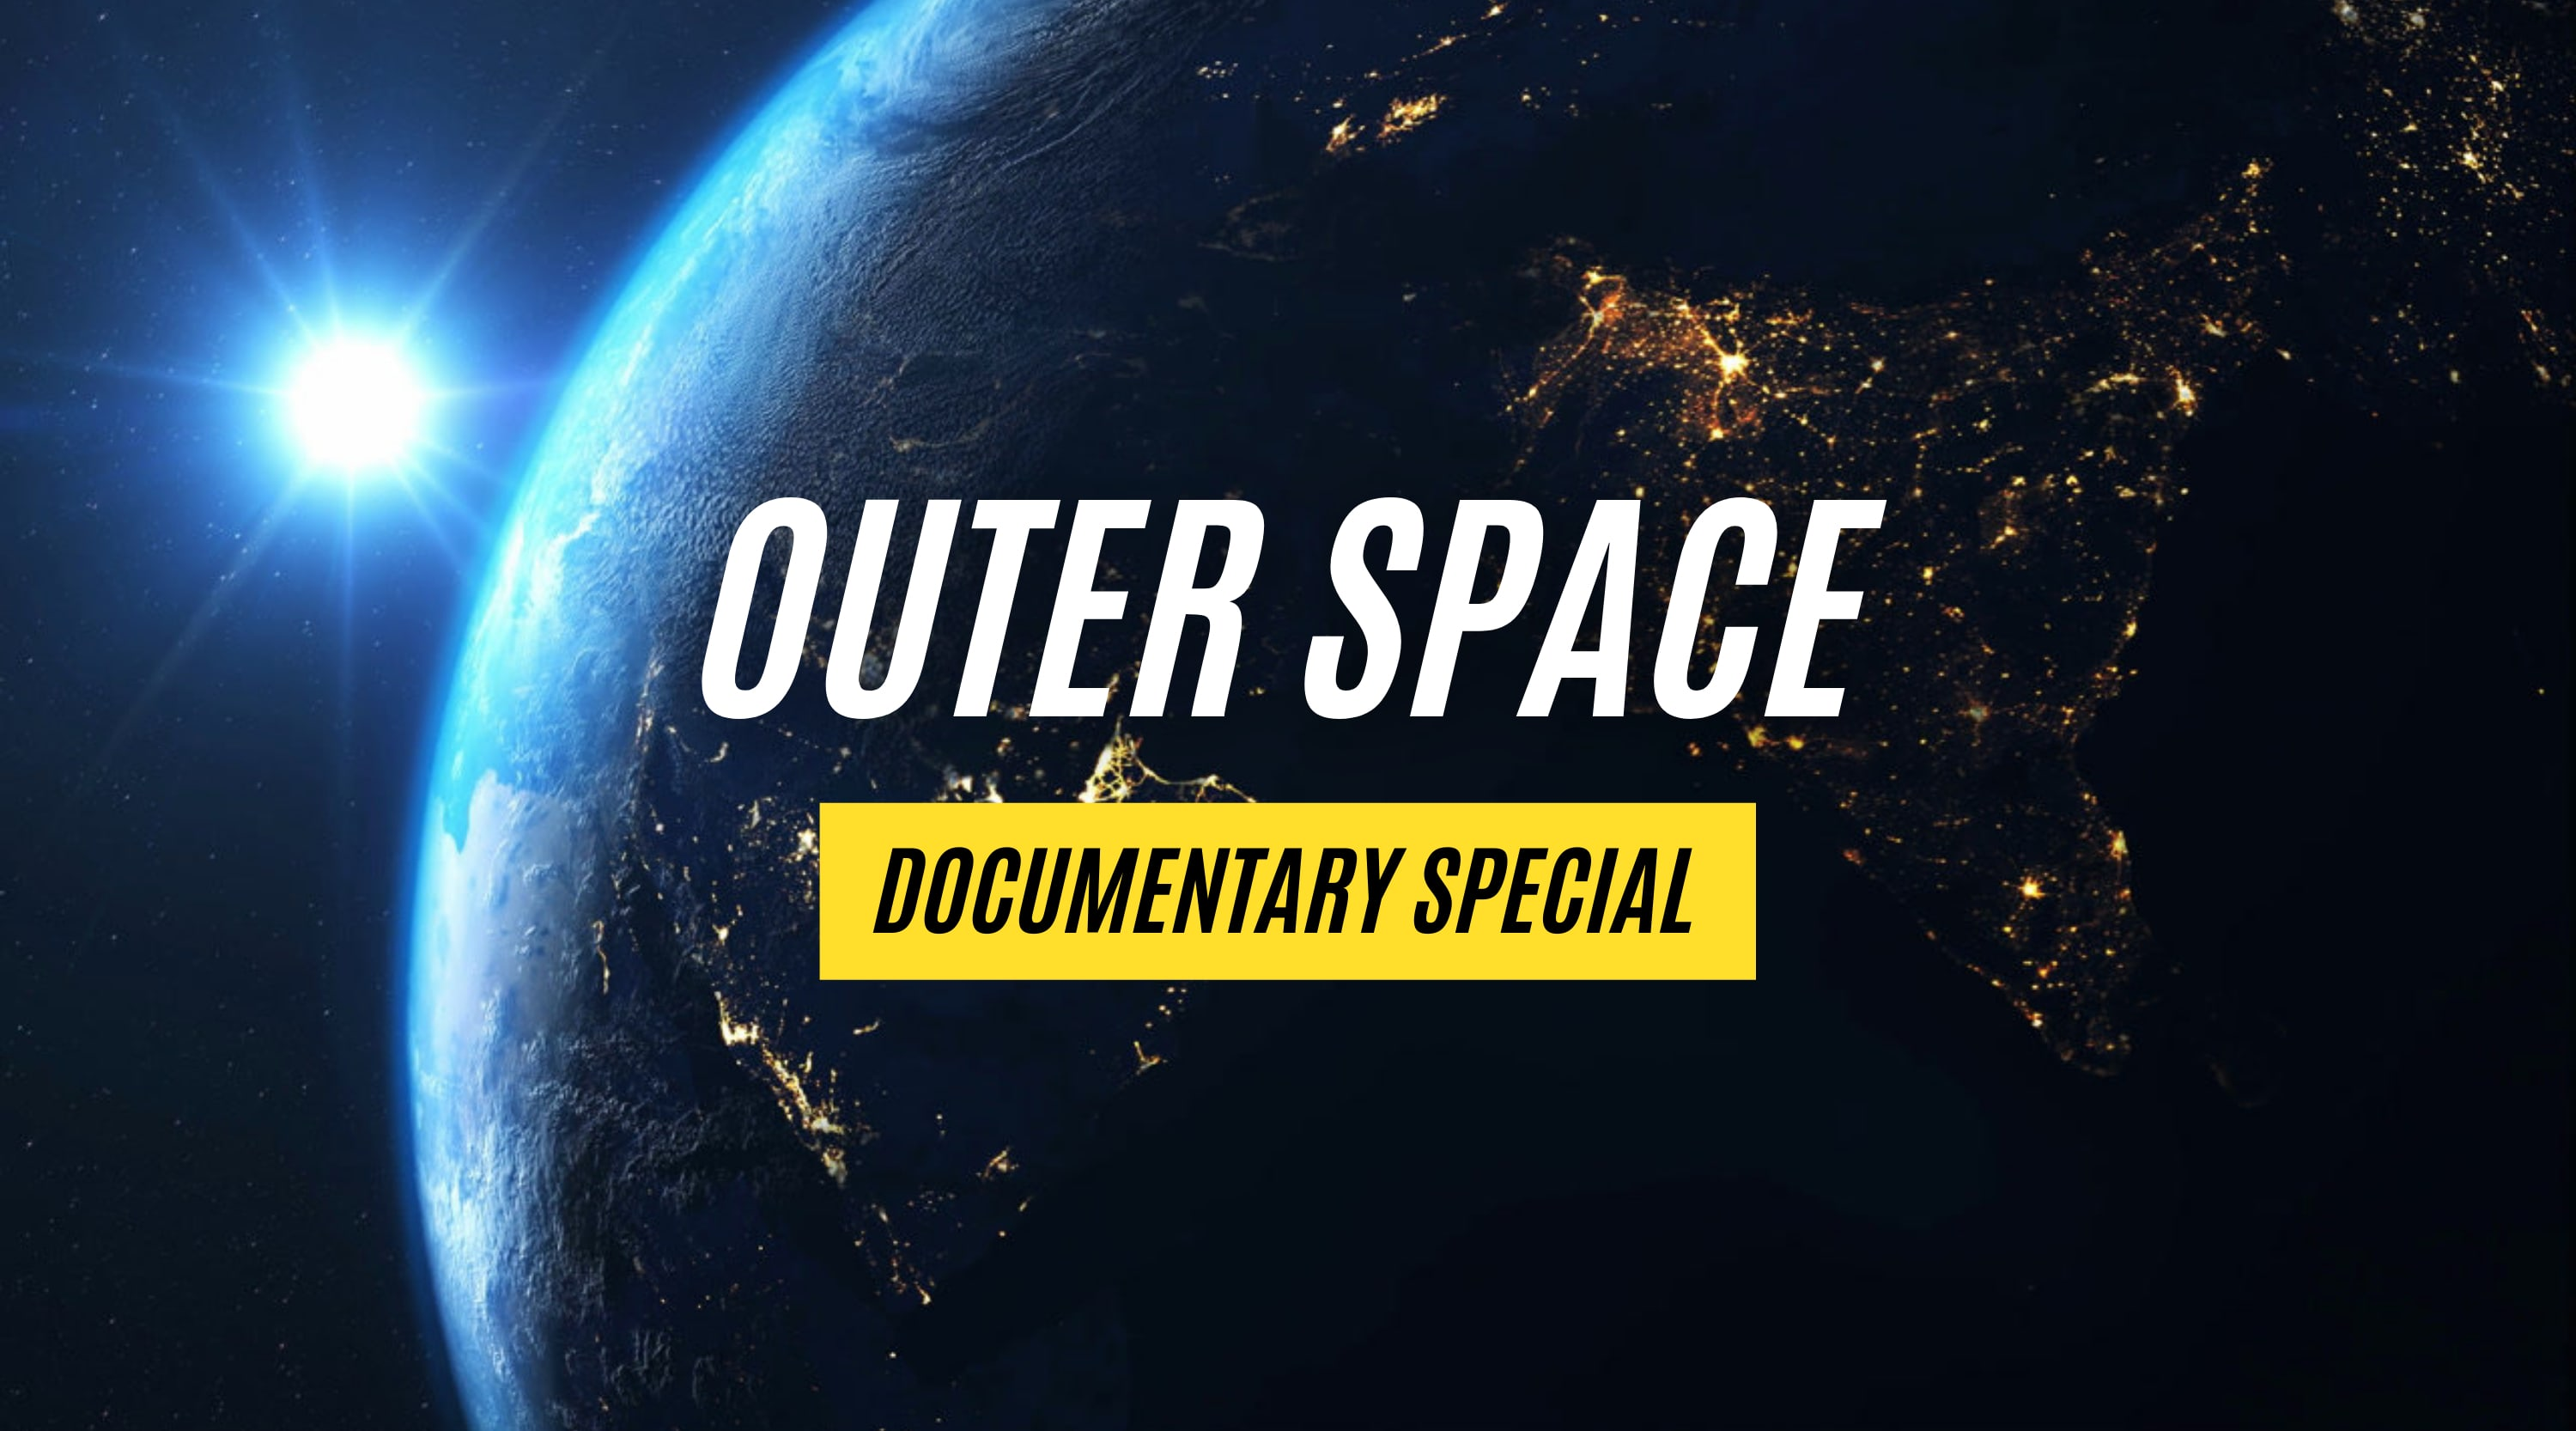 Documentary Special: Outer Space